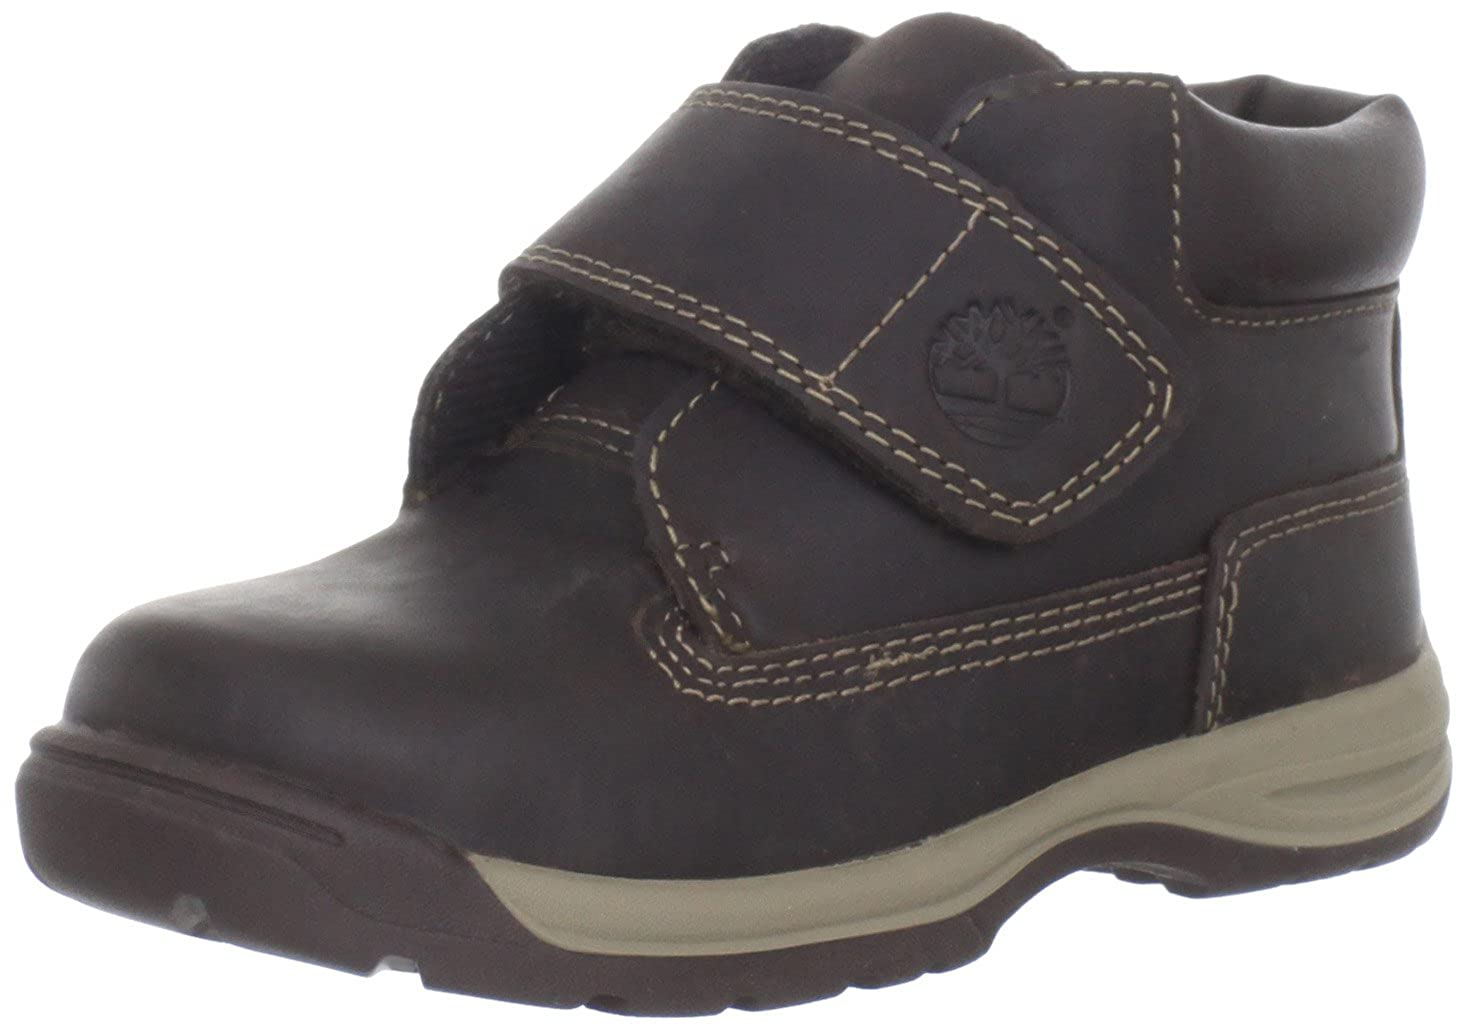 Timberland Timber Tykes Boot Timberland Shoes Child Code TB02587R231